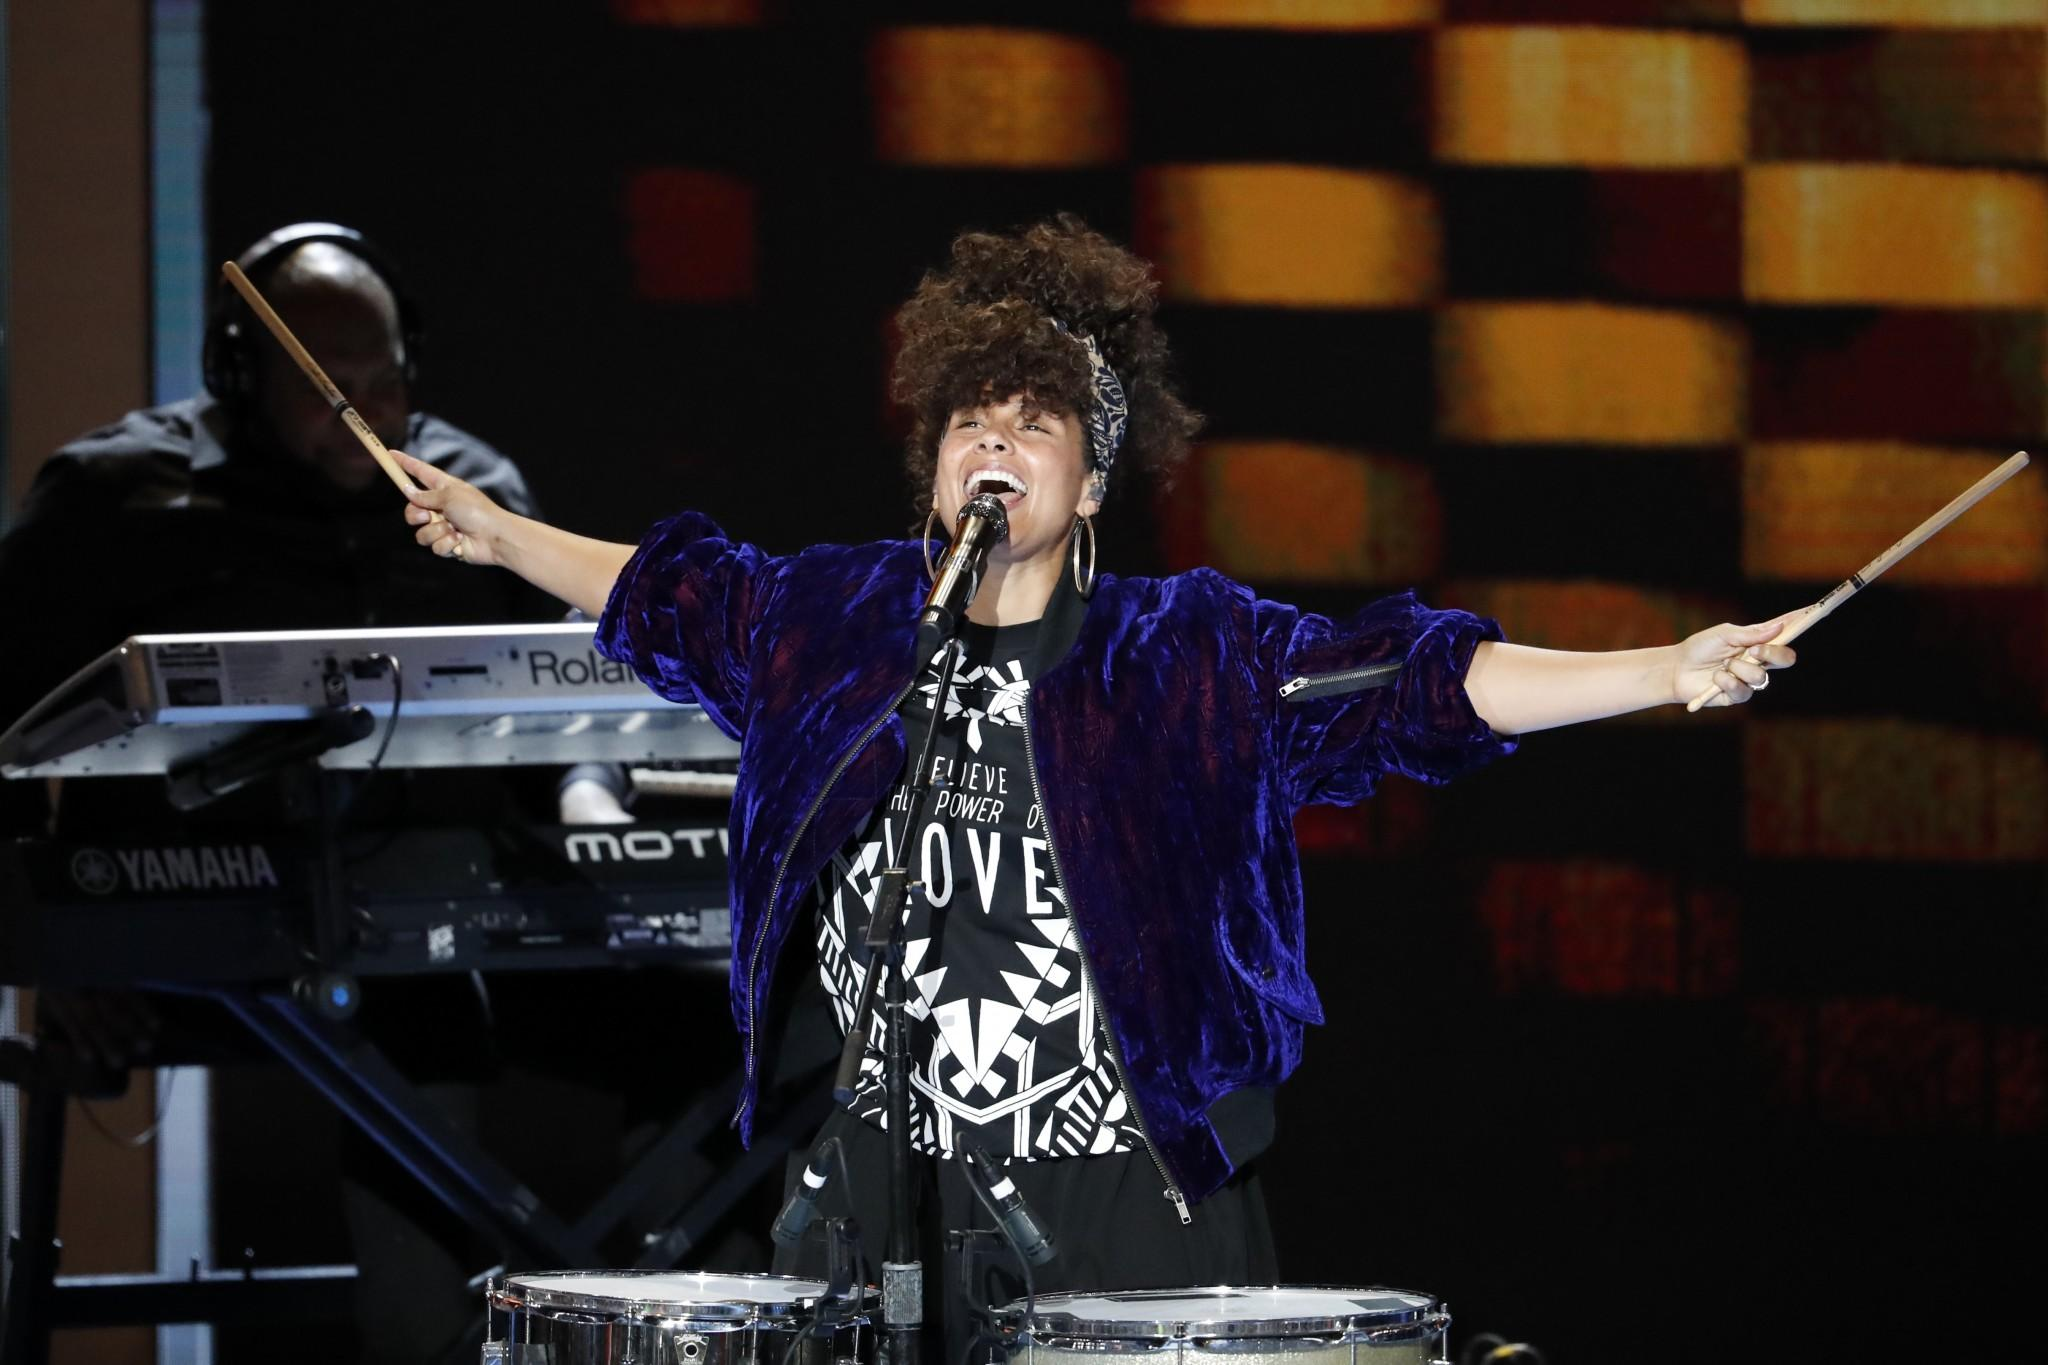 Singer Alicia Keys performs at the convention. (Photo: J. Scott Applewhite/AP)